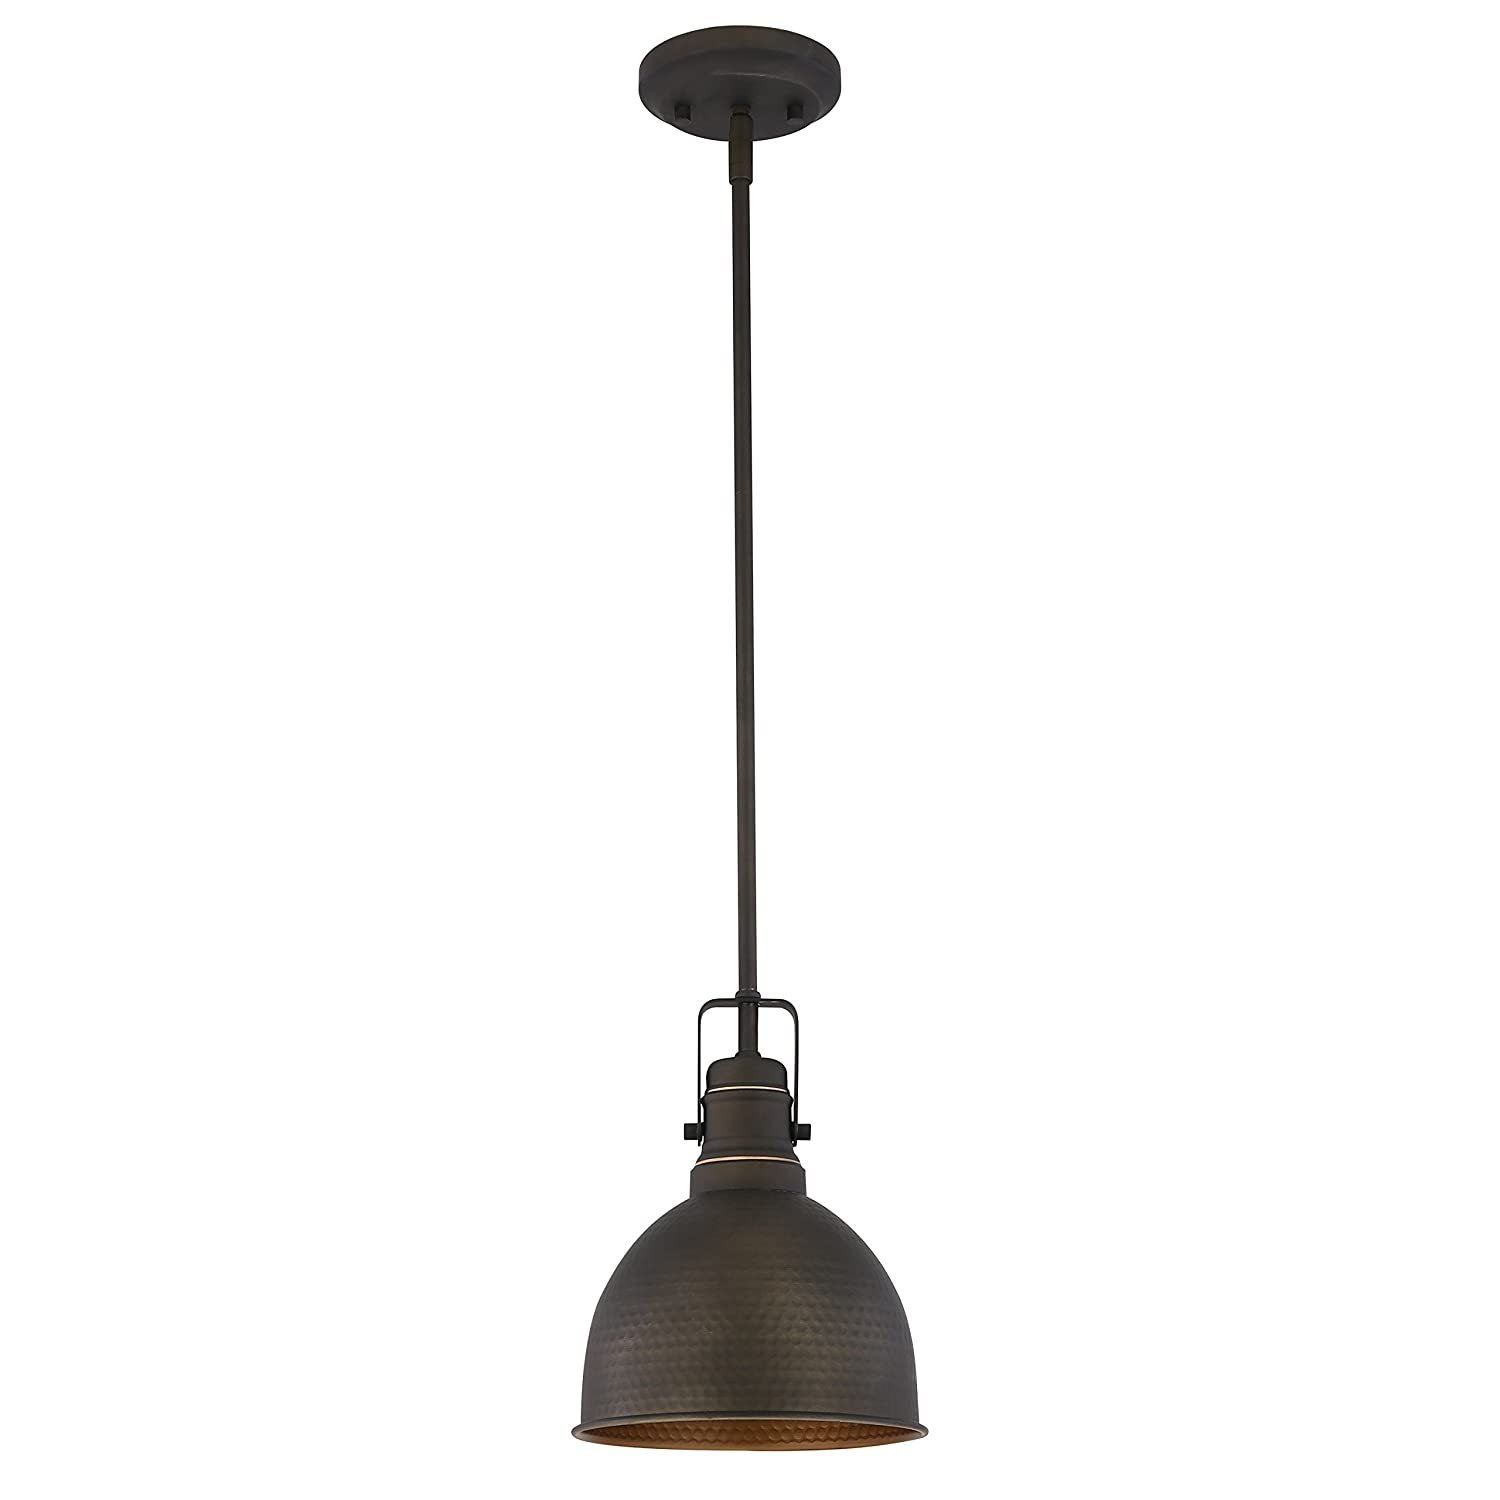 Light Society Hampshire Farmhouse Pendant Lamp, Hammered Oil Rubbed Bronze with Gold Interior, Vintage Industrial Modern Lighting Fixture LS-C248-ORB